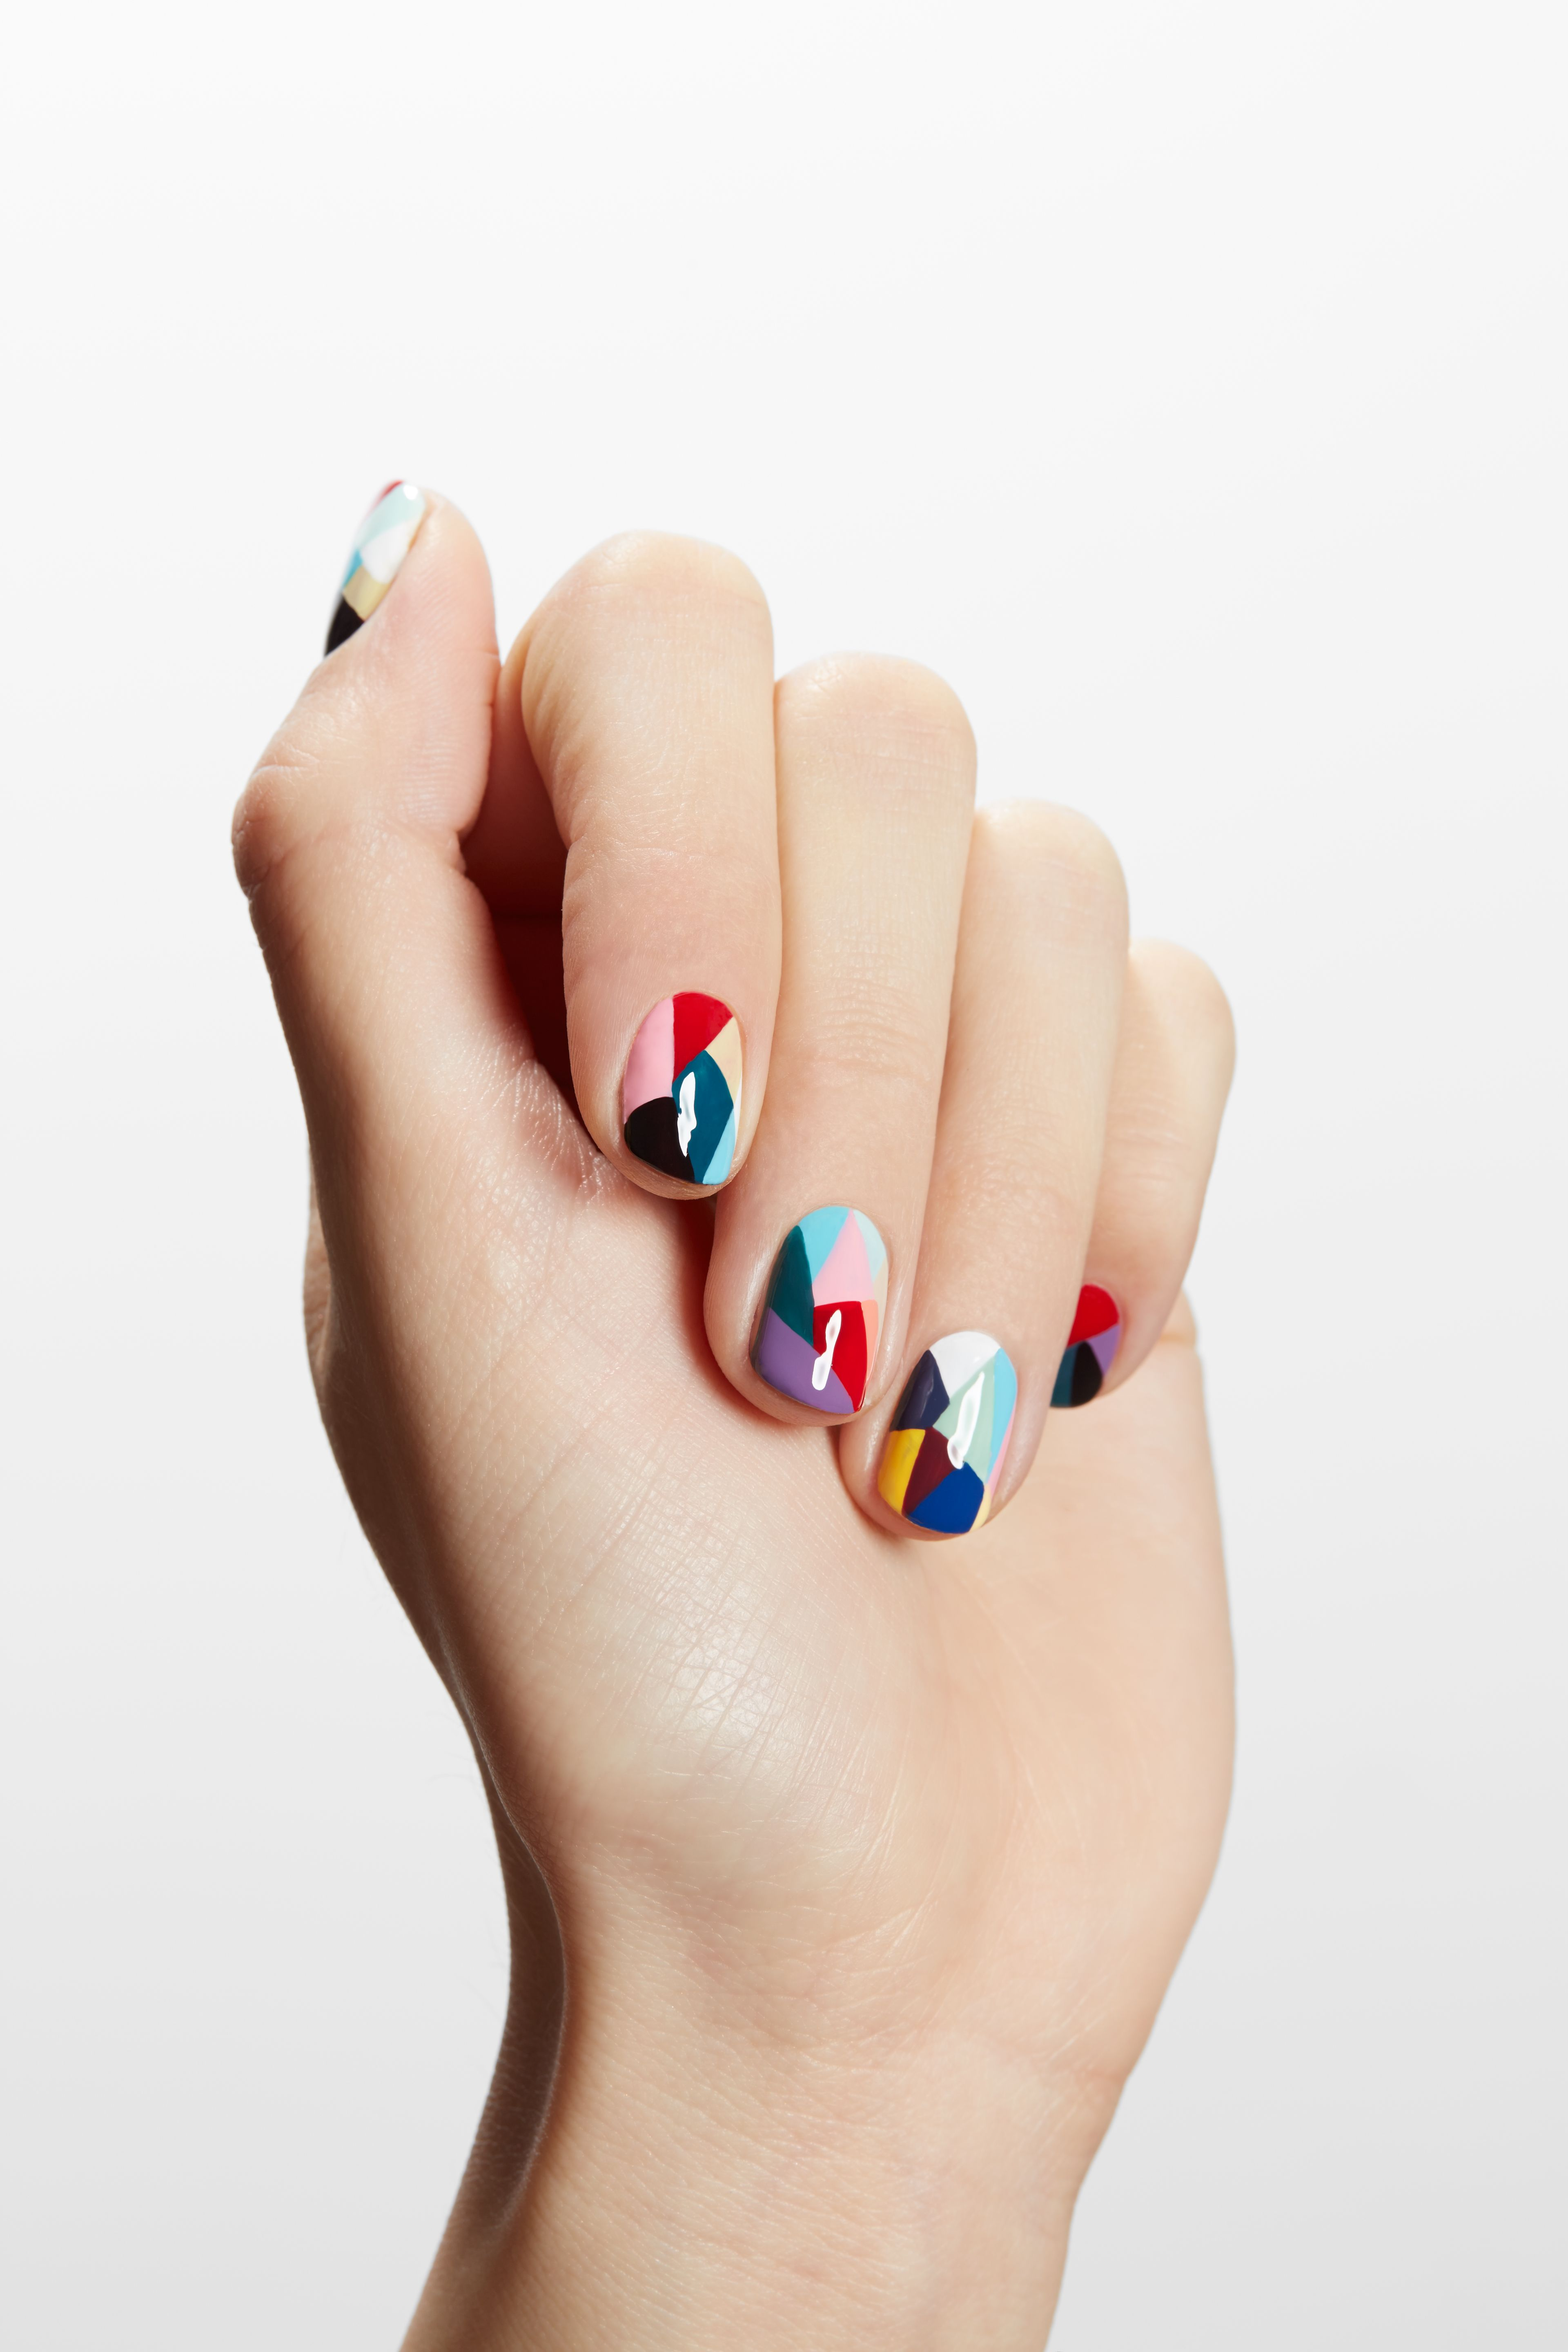 Geometry lessons. Love this nail art! | NAILed It! | Pinterest ...